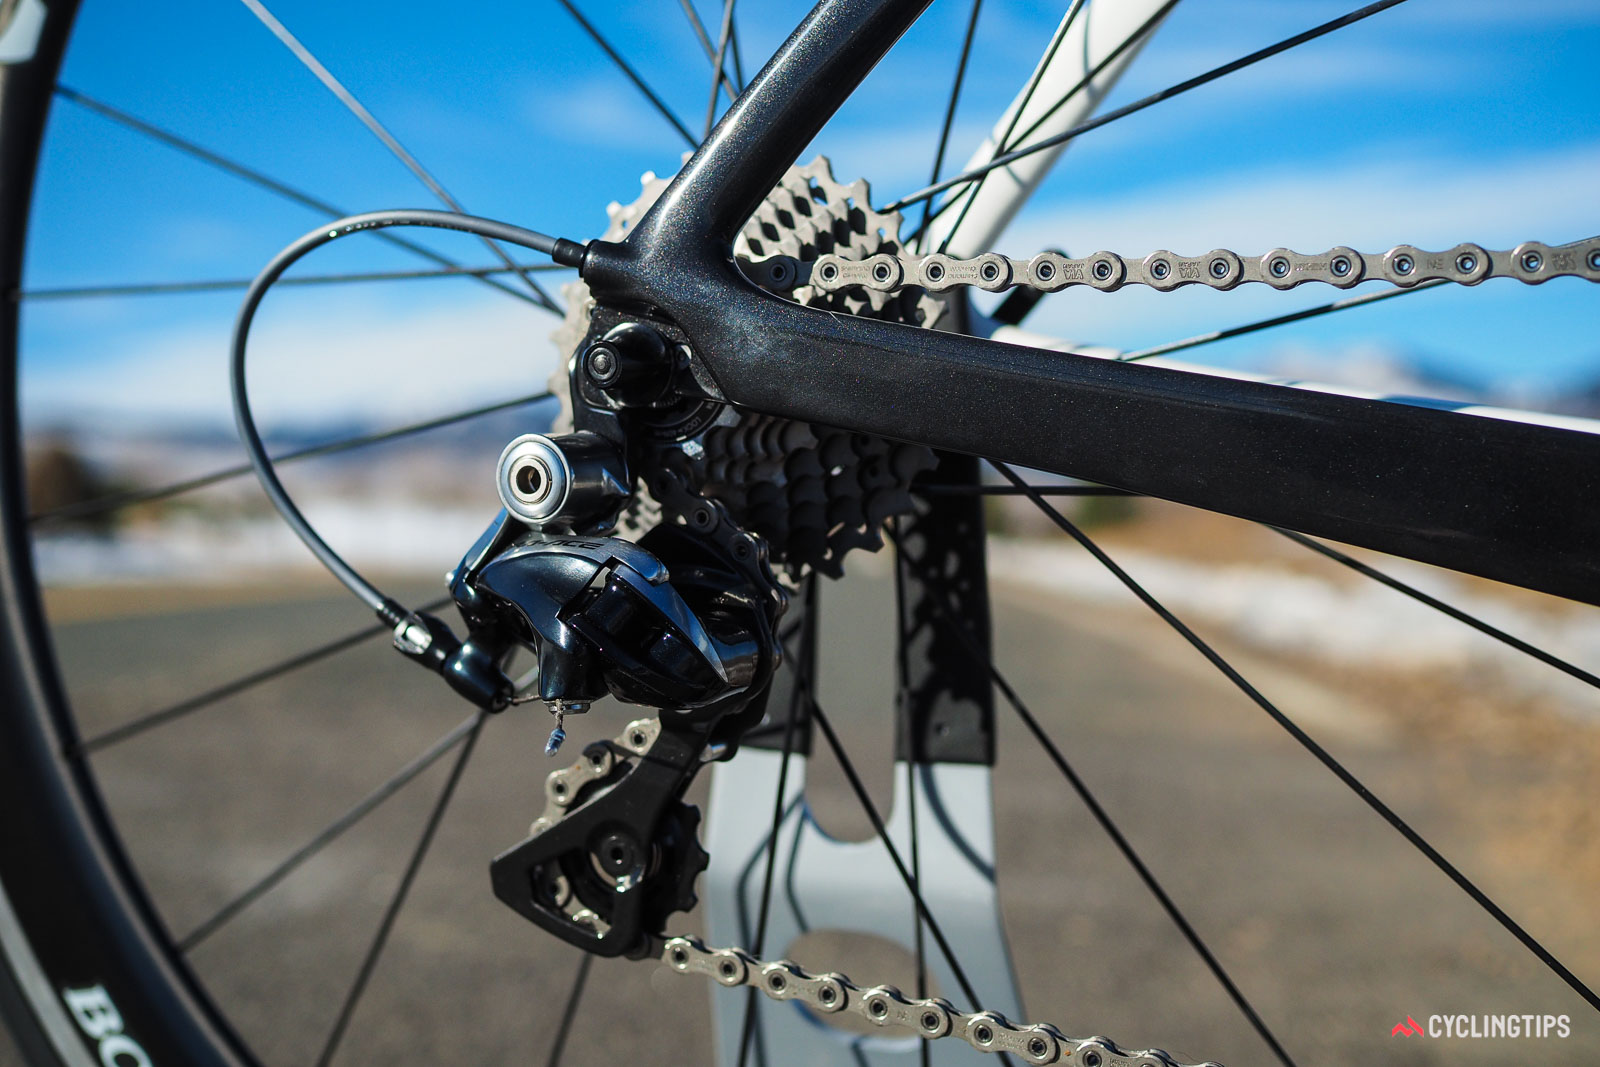 Trek Madone cable routing